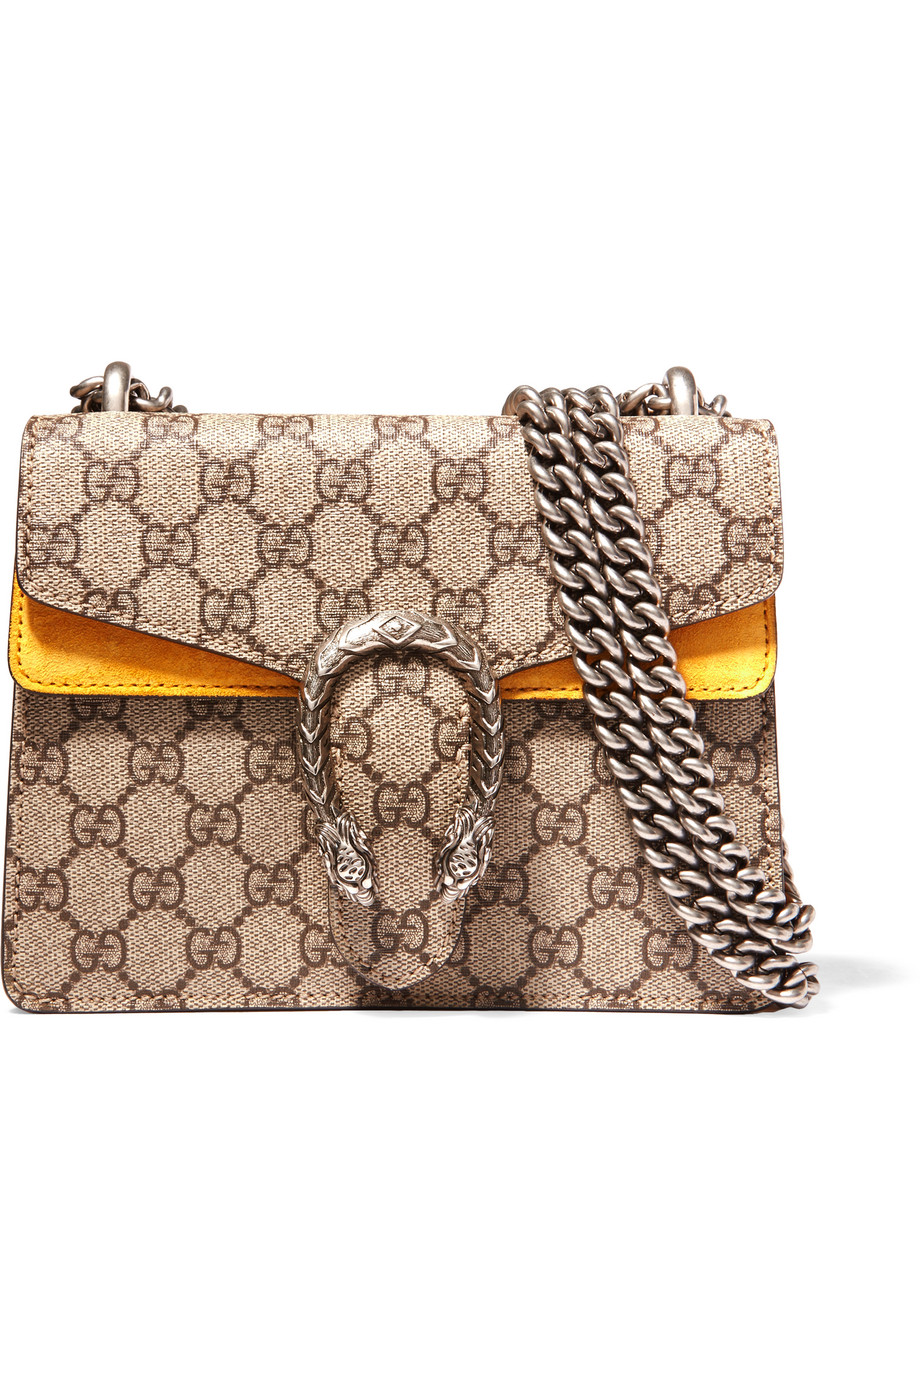 Gucci Dionysus Mini Coated Canvas and Suede Shoulder Bag, Beige, Women's